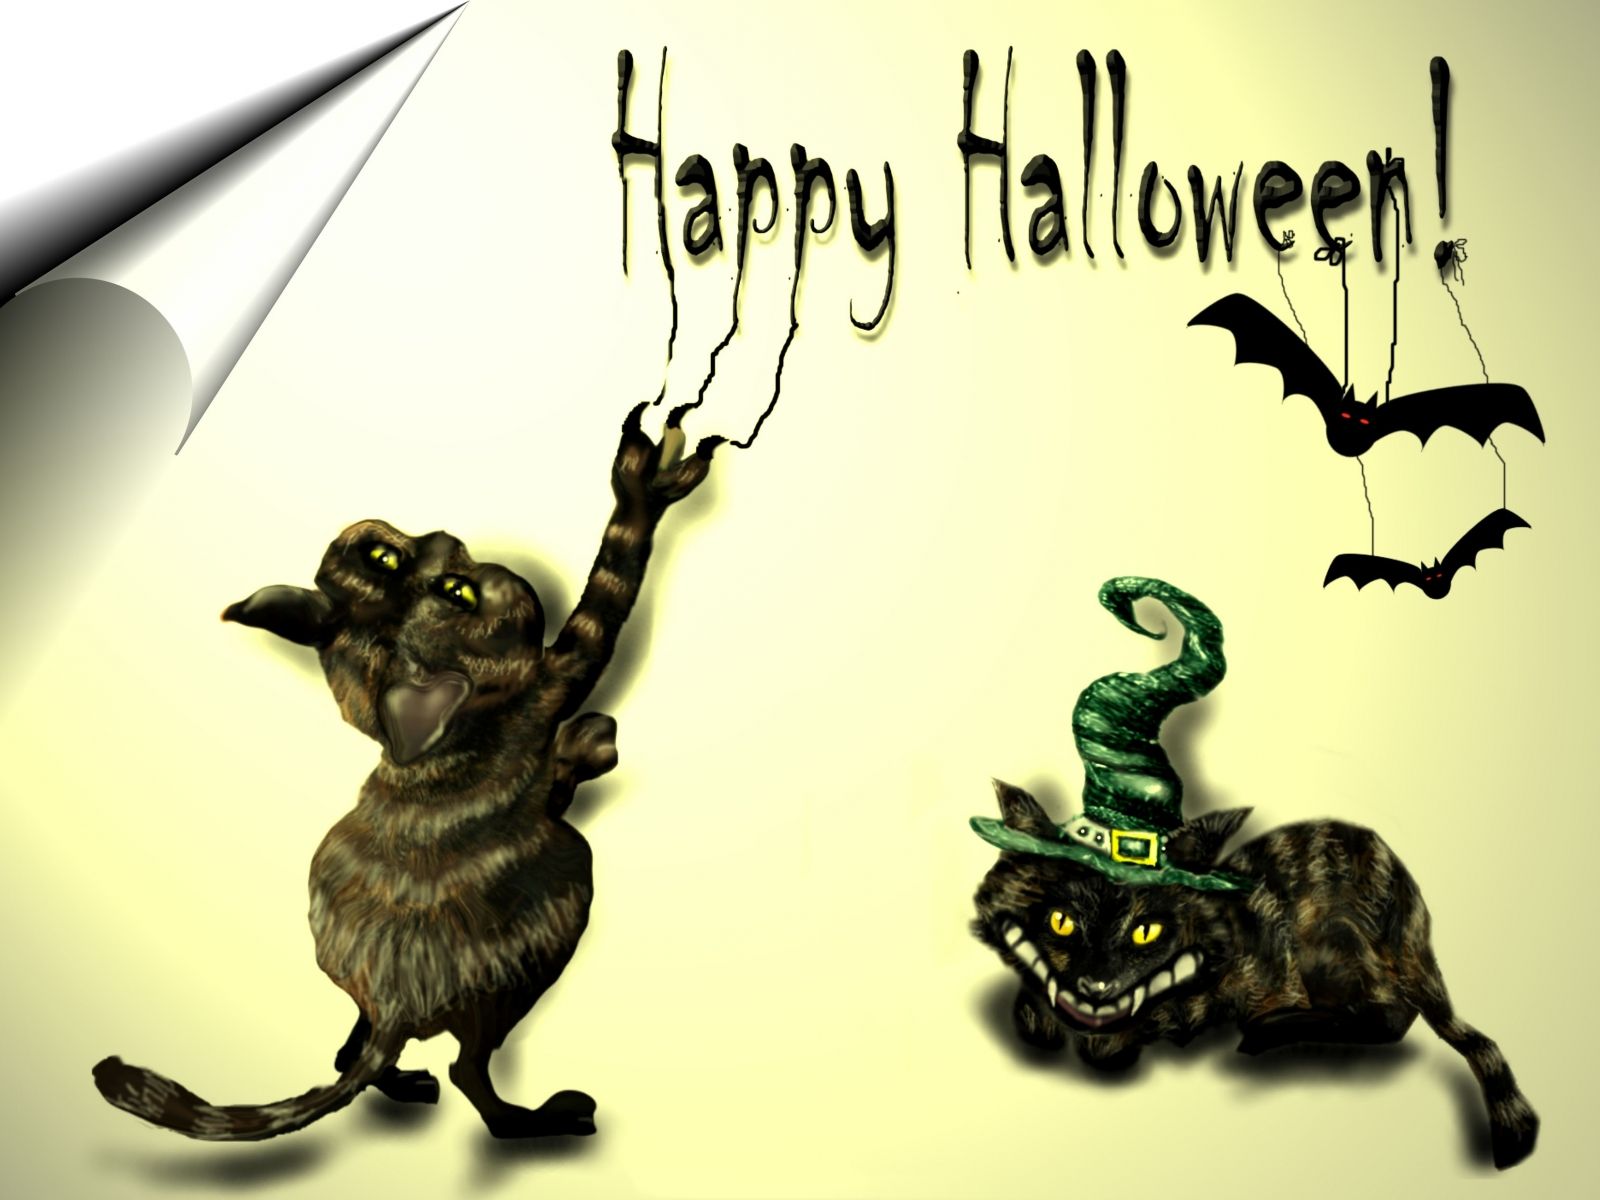 Holiday - Halloween  Happy Halloween Wallpaper